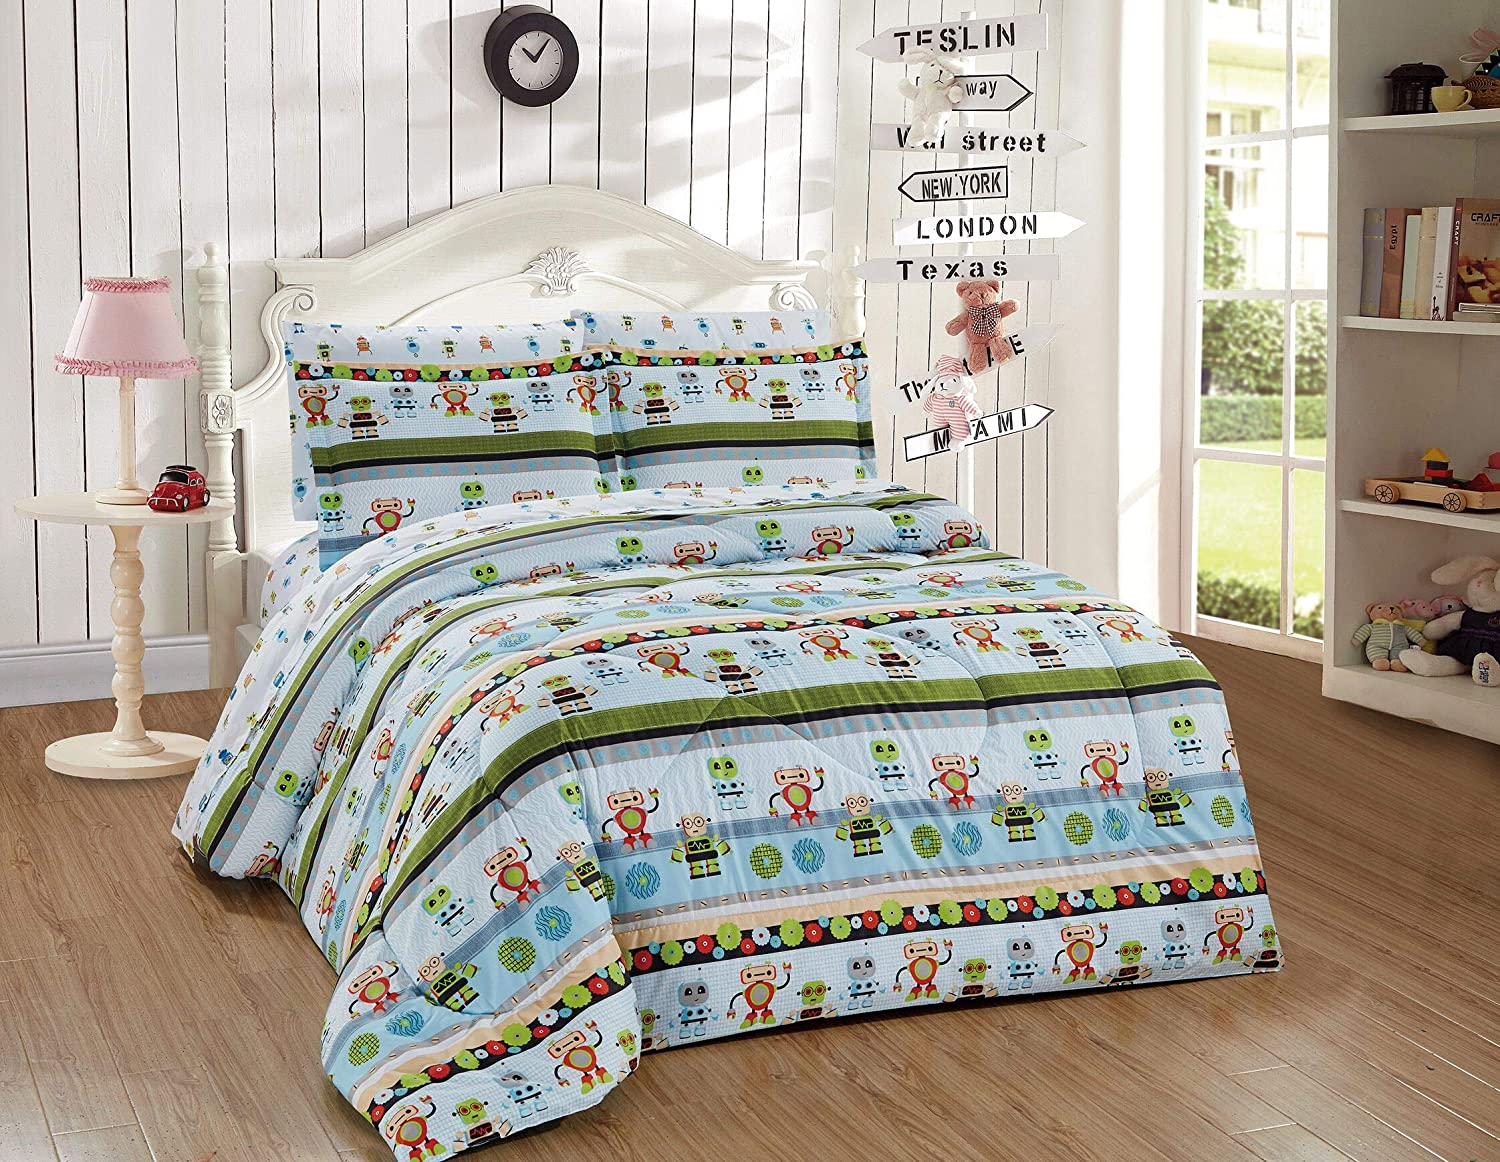 Better Home Style Multicolor Blue Green Robots Printed Fun Design 7 Piece Comforter Bedding Set for Boys/Kids/Teens Bed in a Bag with Sheet Set # Robots (Full)